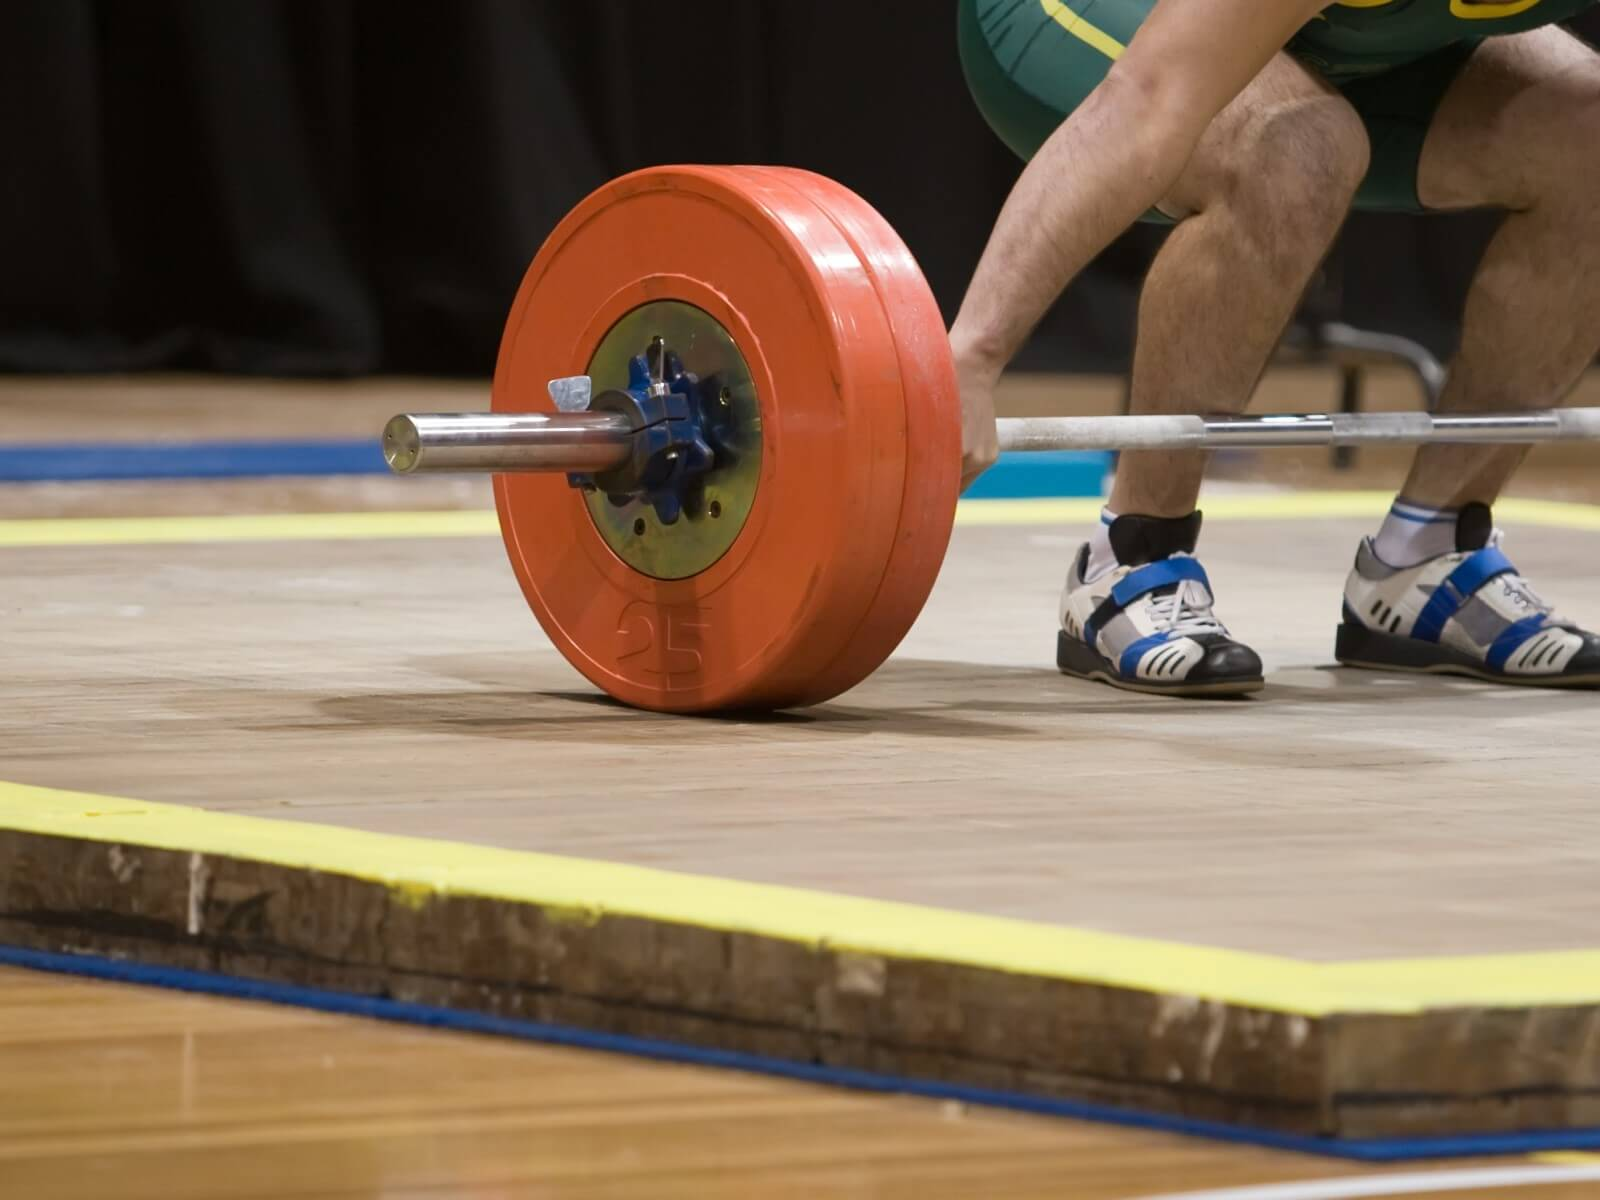 Olympic weight lifter wearing adidas adistar shoes preparing for clean and jerk.